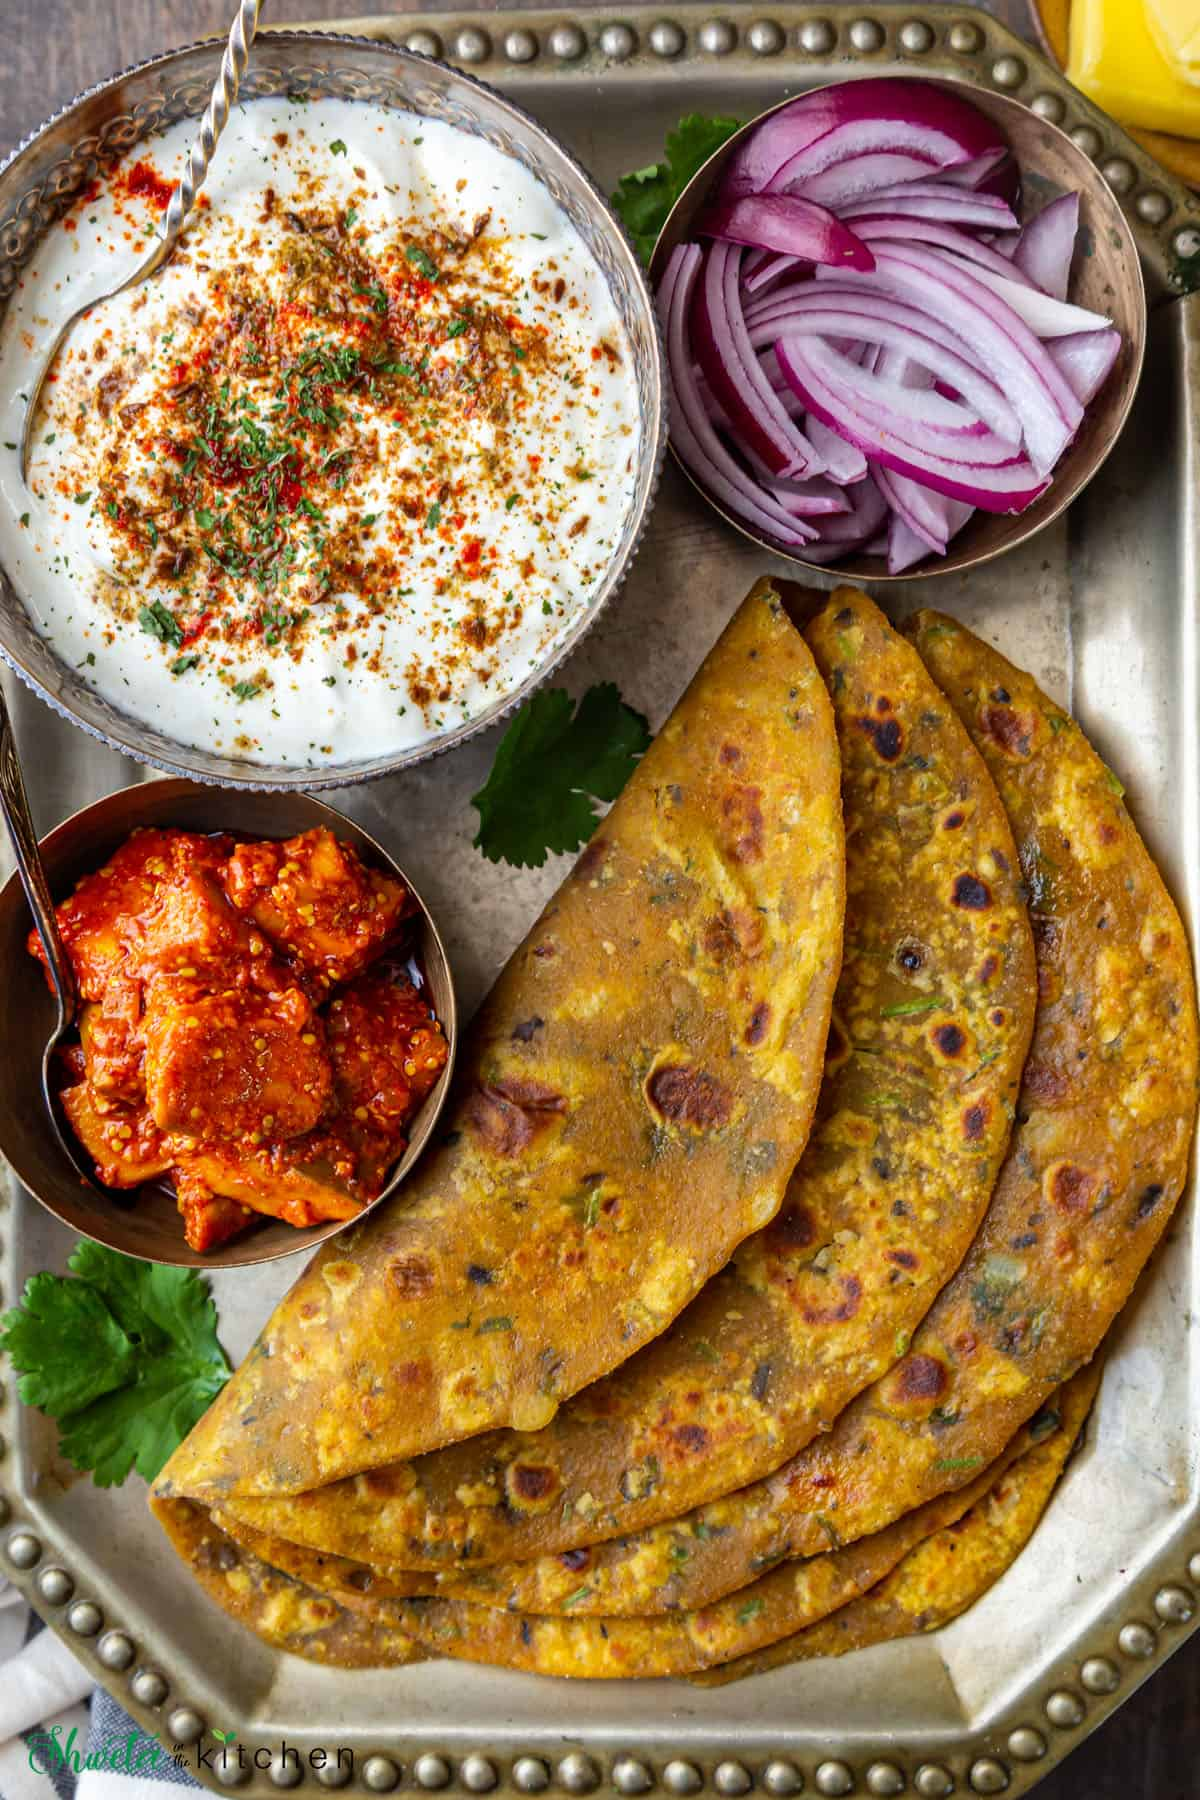 Dal paratha, pickle, spiced yogurt and onions on a tray